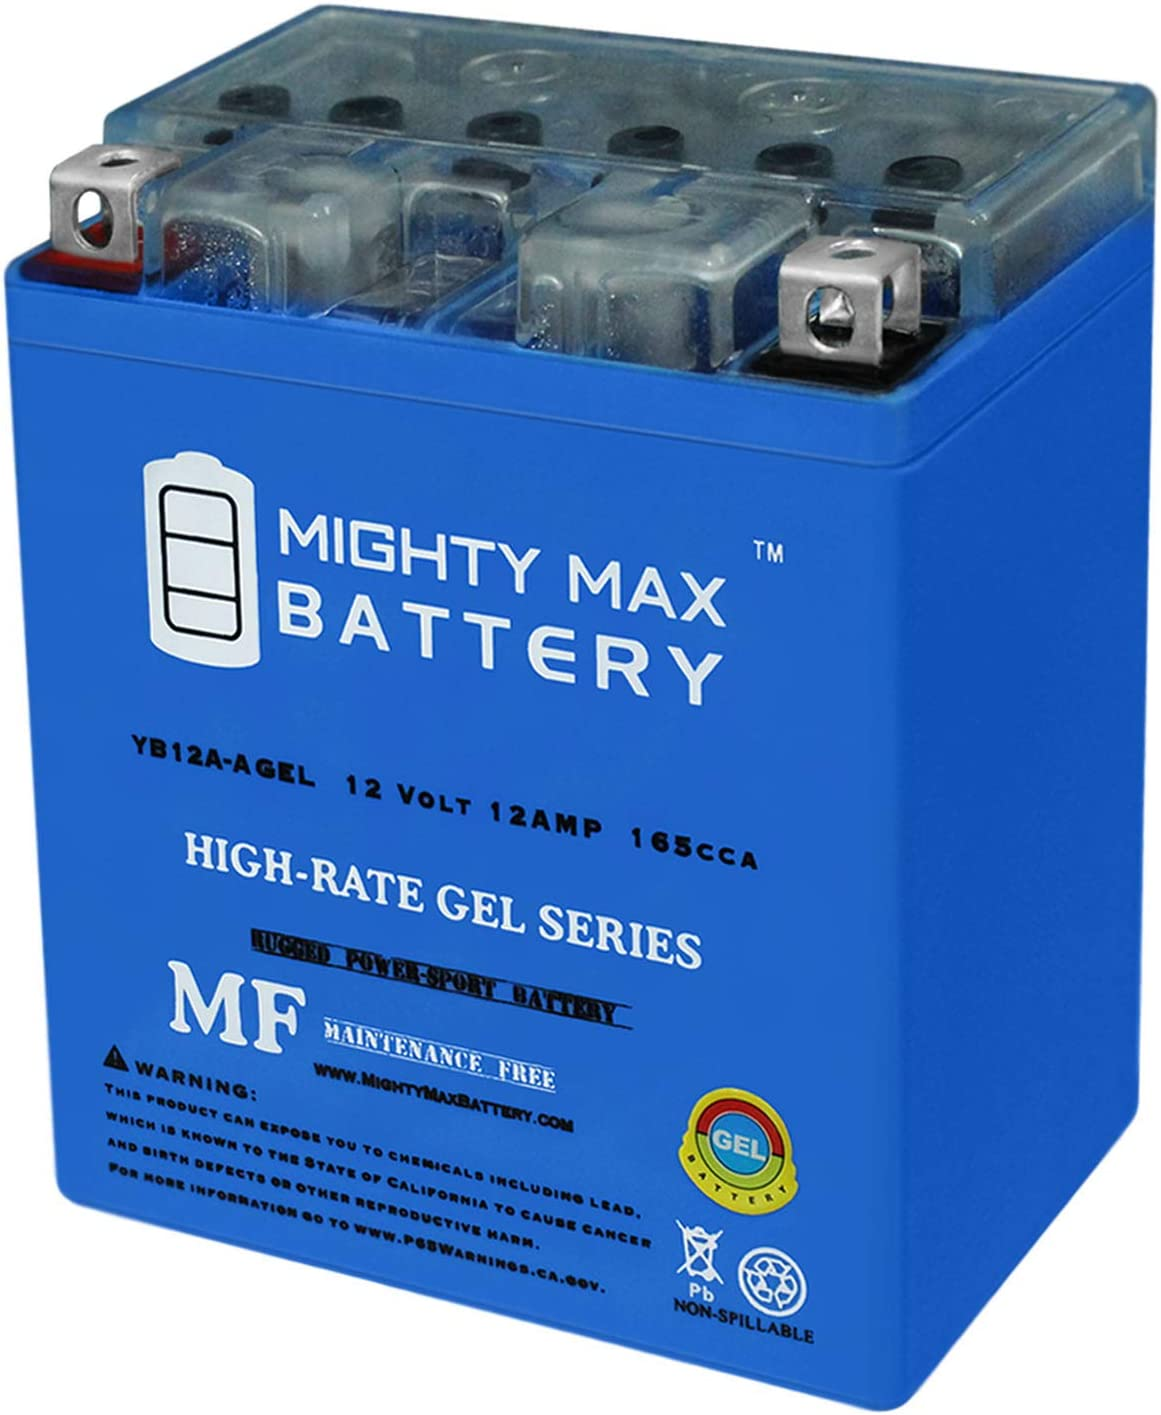 Mighty Max Battery Portland Mall 12V 12AH 45 Replaces Popular shop is the lowest price challenge Honda 165CCA Gel